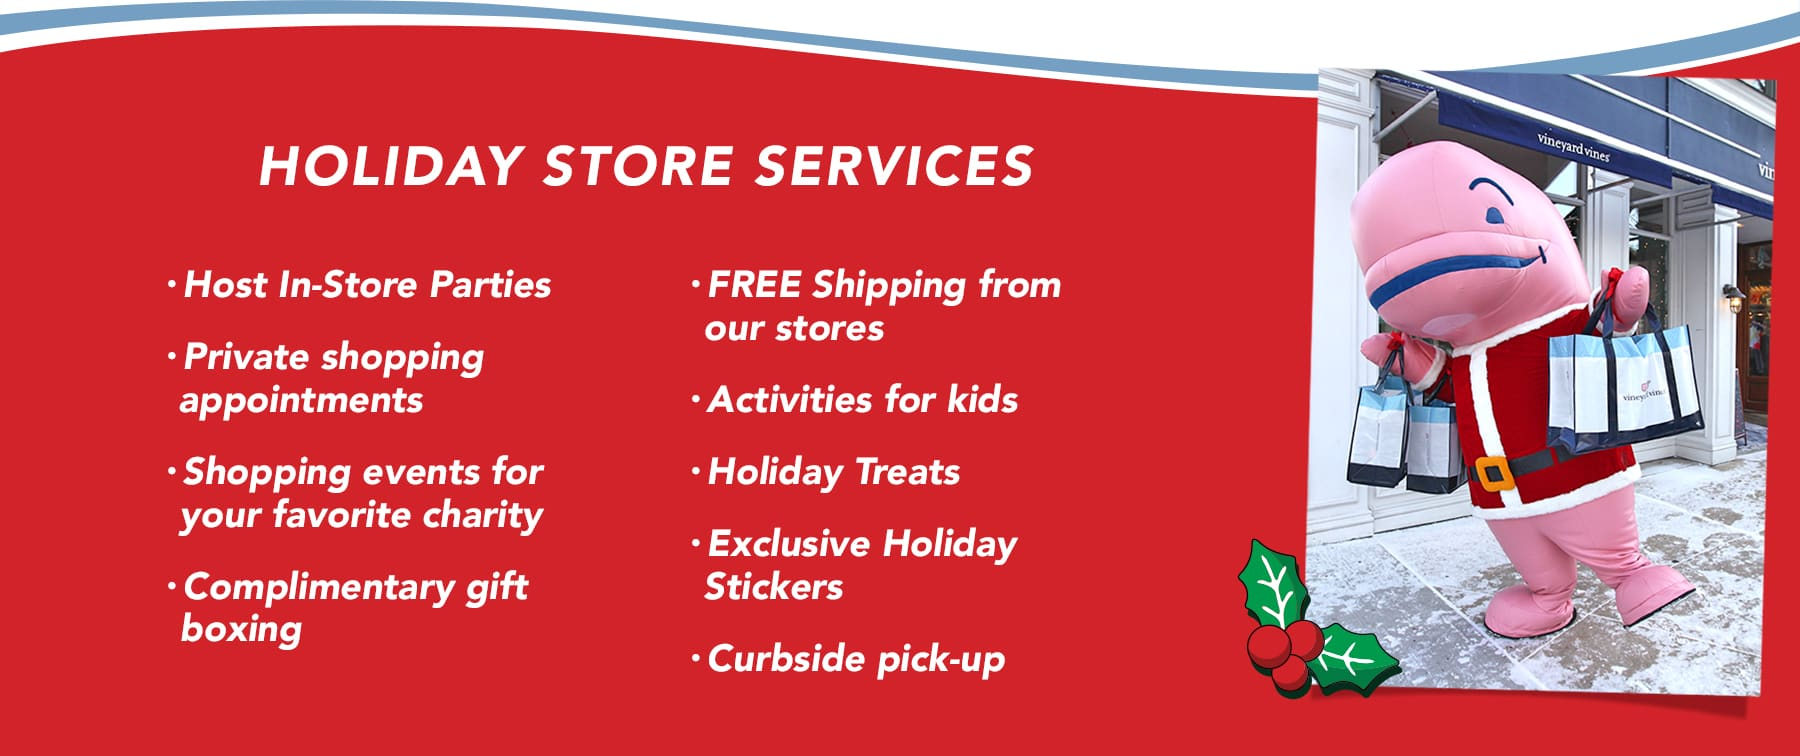 Holiday Store Services: Host in-store parties, private shopping appointments, shopping events for your favorite charity, complimentary gift boxing, FREE shipping from our stores, activities for kids, holiday treats, exclusive holiday stickers, curside pick-up.